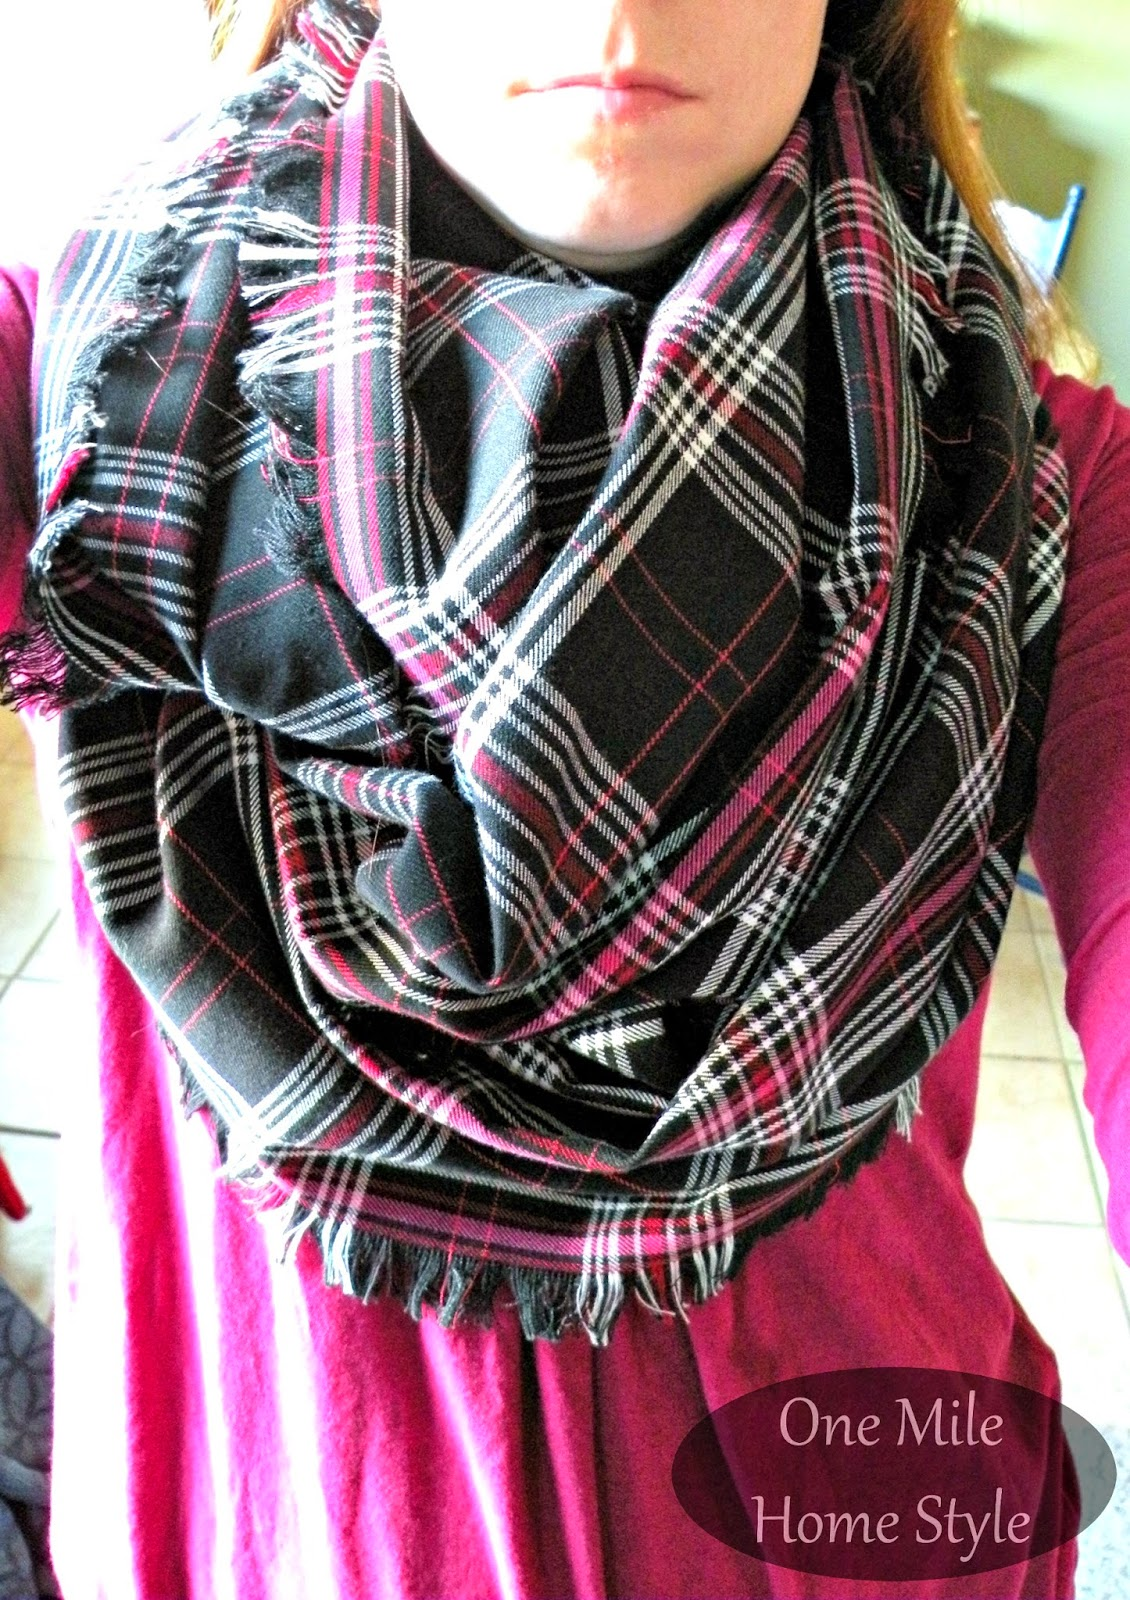 DIY Plaid Blanket Infinity Scarf in Black, White and Pink | One Mile Home Style